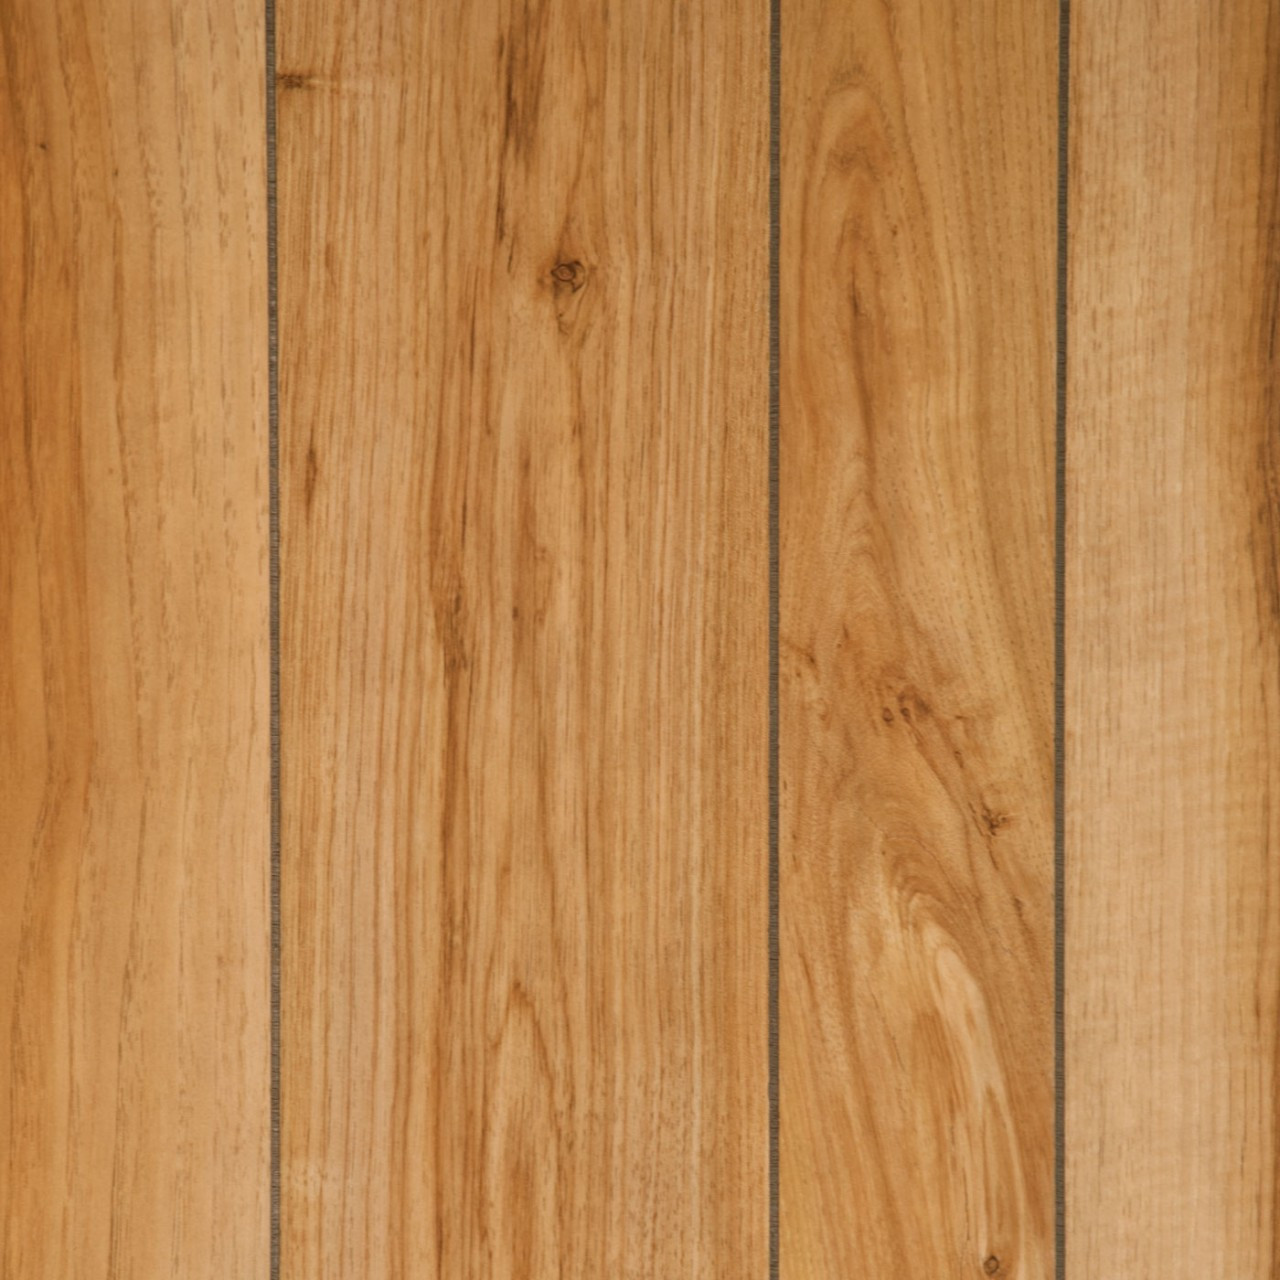 Very Impressive portraiture of Home Paneling   Planking   Cornices Plywood Wall Paneling Native  with #9B6730 color and 1280x1280 pixels